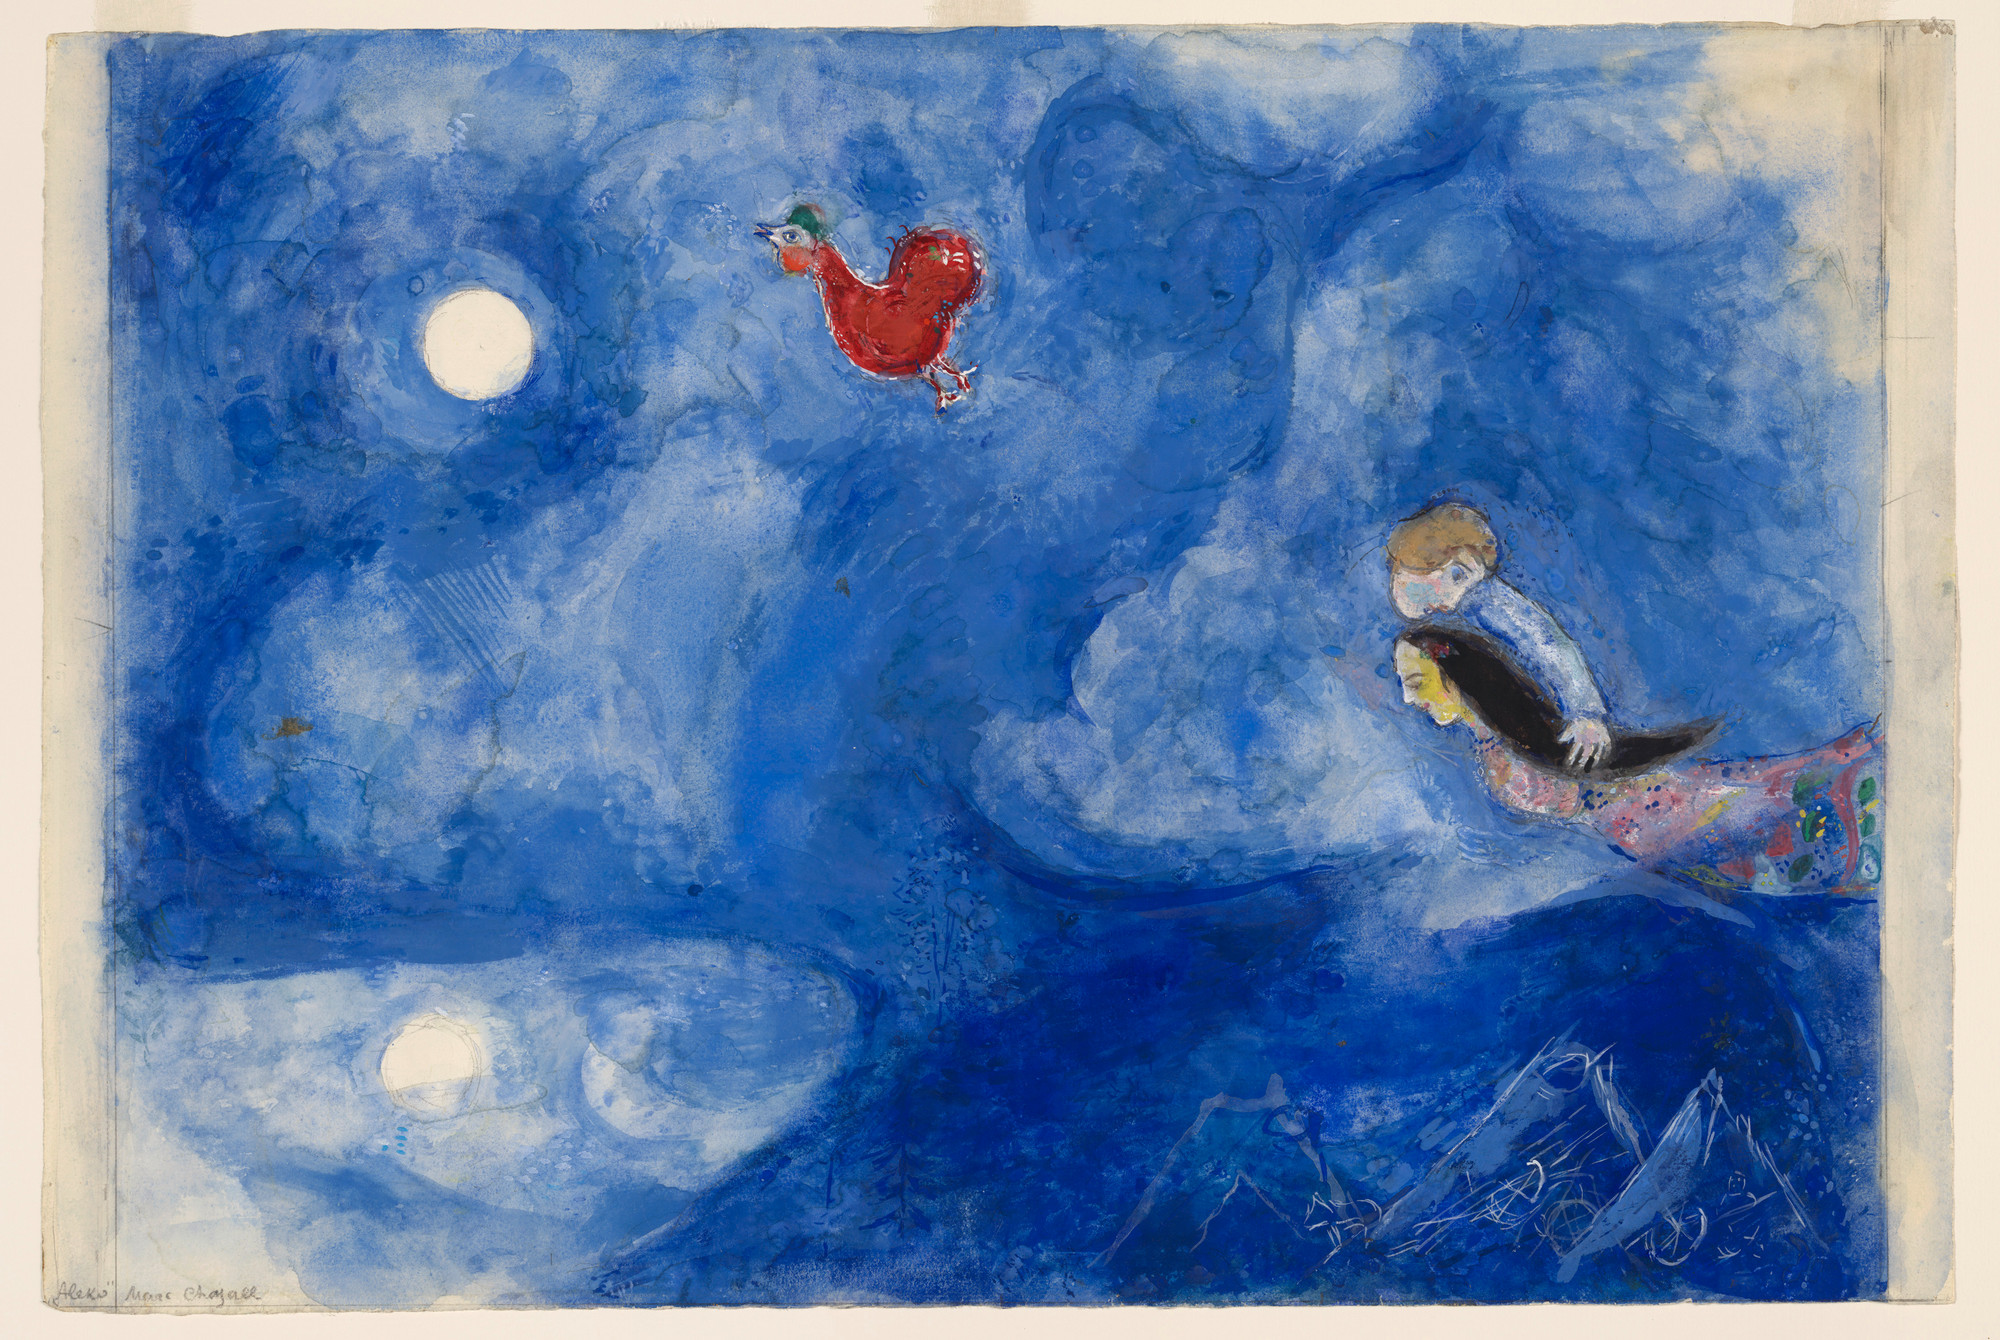 "Marc Chagall. Aleko and Zemphira by Moonlight. Study for backdrop for Scene I of the ballet Aleko. 1942. Gouache and pencil on paper, 15 1/8 x 22 1/2"" (38.4 x 57.2 cm). The Museum of Modern Art. Acquired through the Lillie P. Bliss Bequest. © 2009 Artists Rights Society (ARS), New York/ADAGP, Paris."